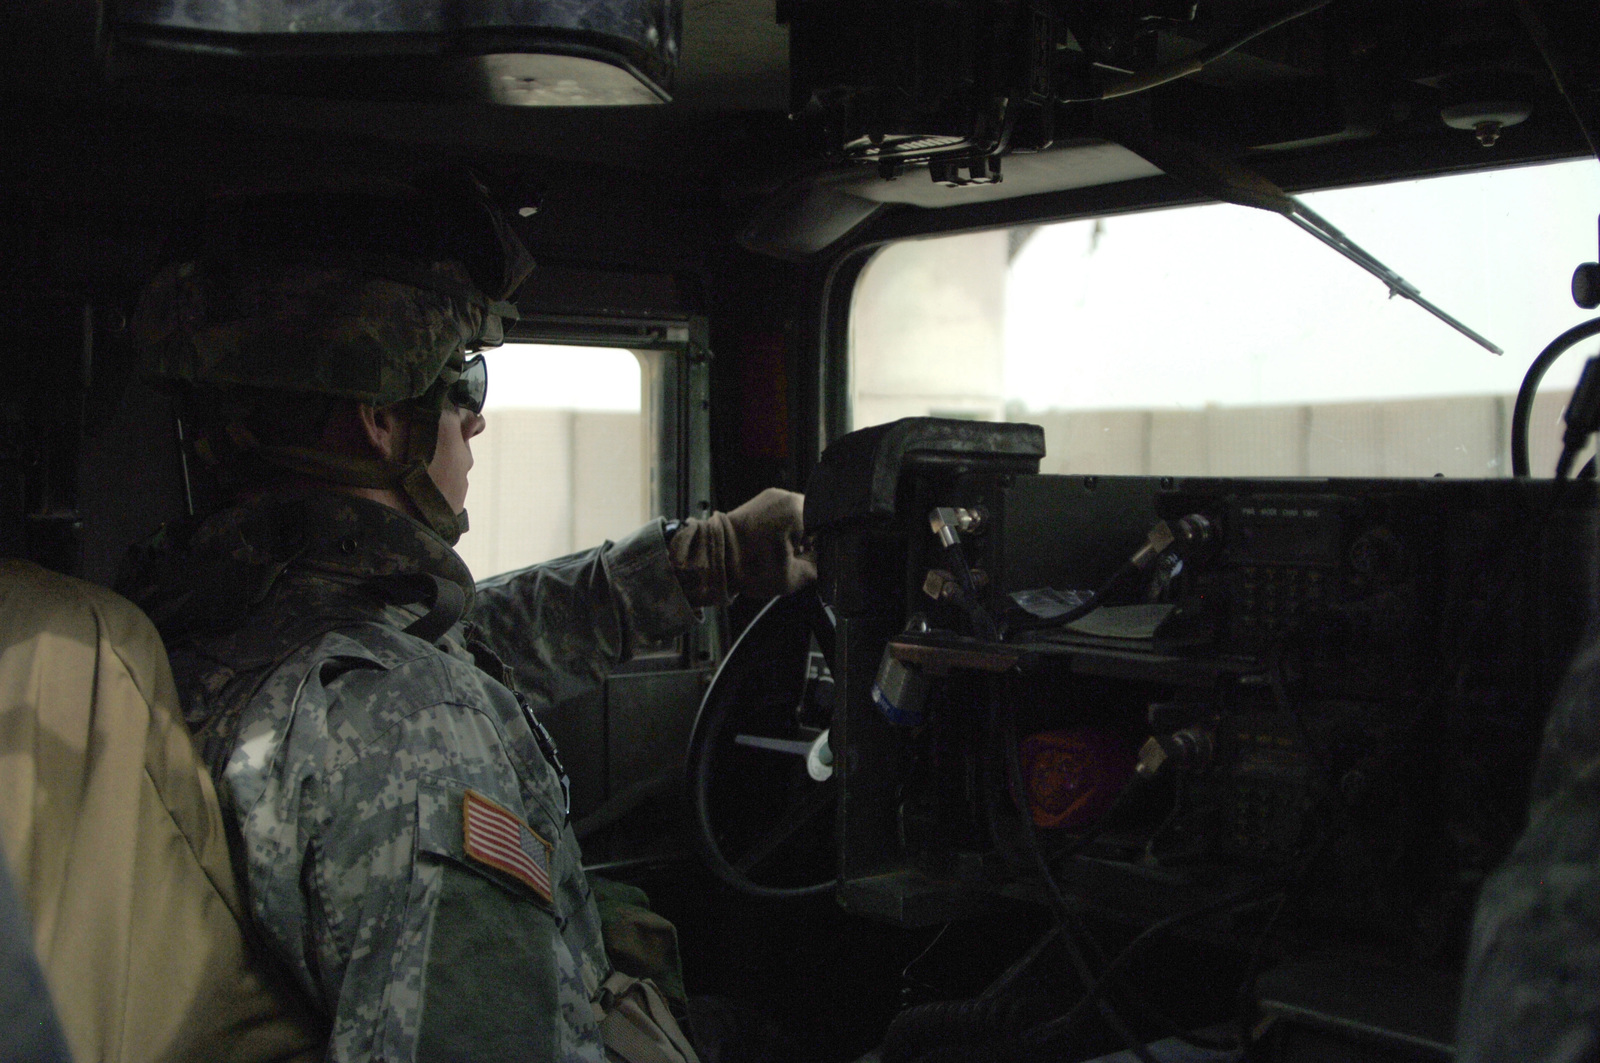 U.S. Army PFC. Albert Shy from A battery 3rd battalion, 320th Field Artillery Regiment, 101st Airborne Division drives a High Mobility Multi-Purpose Wheeled Vehicle (HMMWV) during a convoy operation out of Forward Operation Base Remagen, Iraq on April 16, 2006.   Currently the 3rd Brigade, 101st Airborne Division is deployed in Iraq supporting Operation Iraqi Freedom.(U.S. Army photo by SPC. Teddy Wade) (Released)